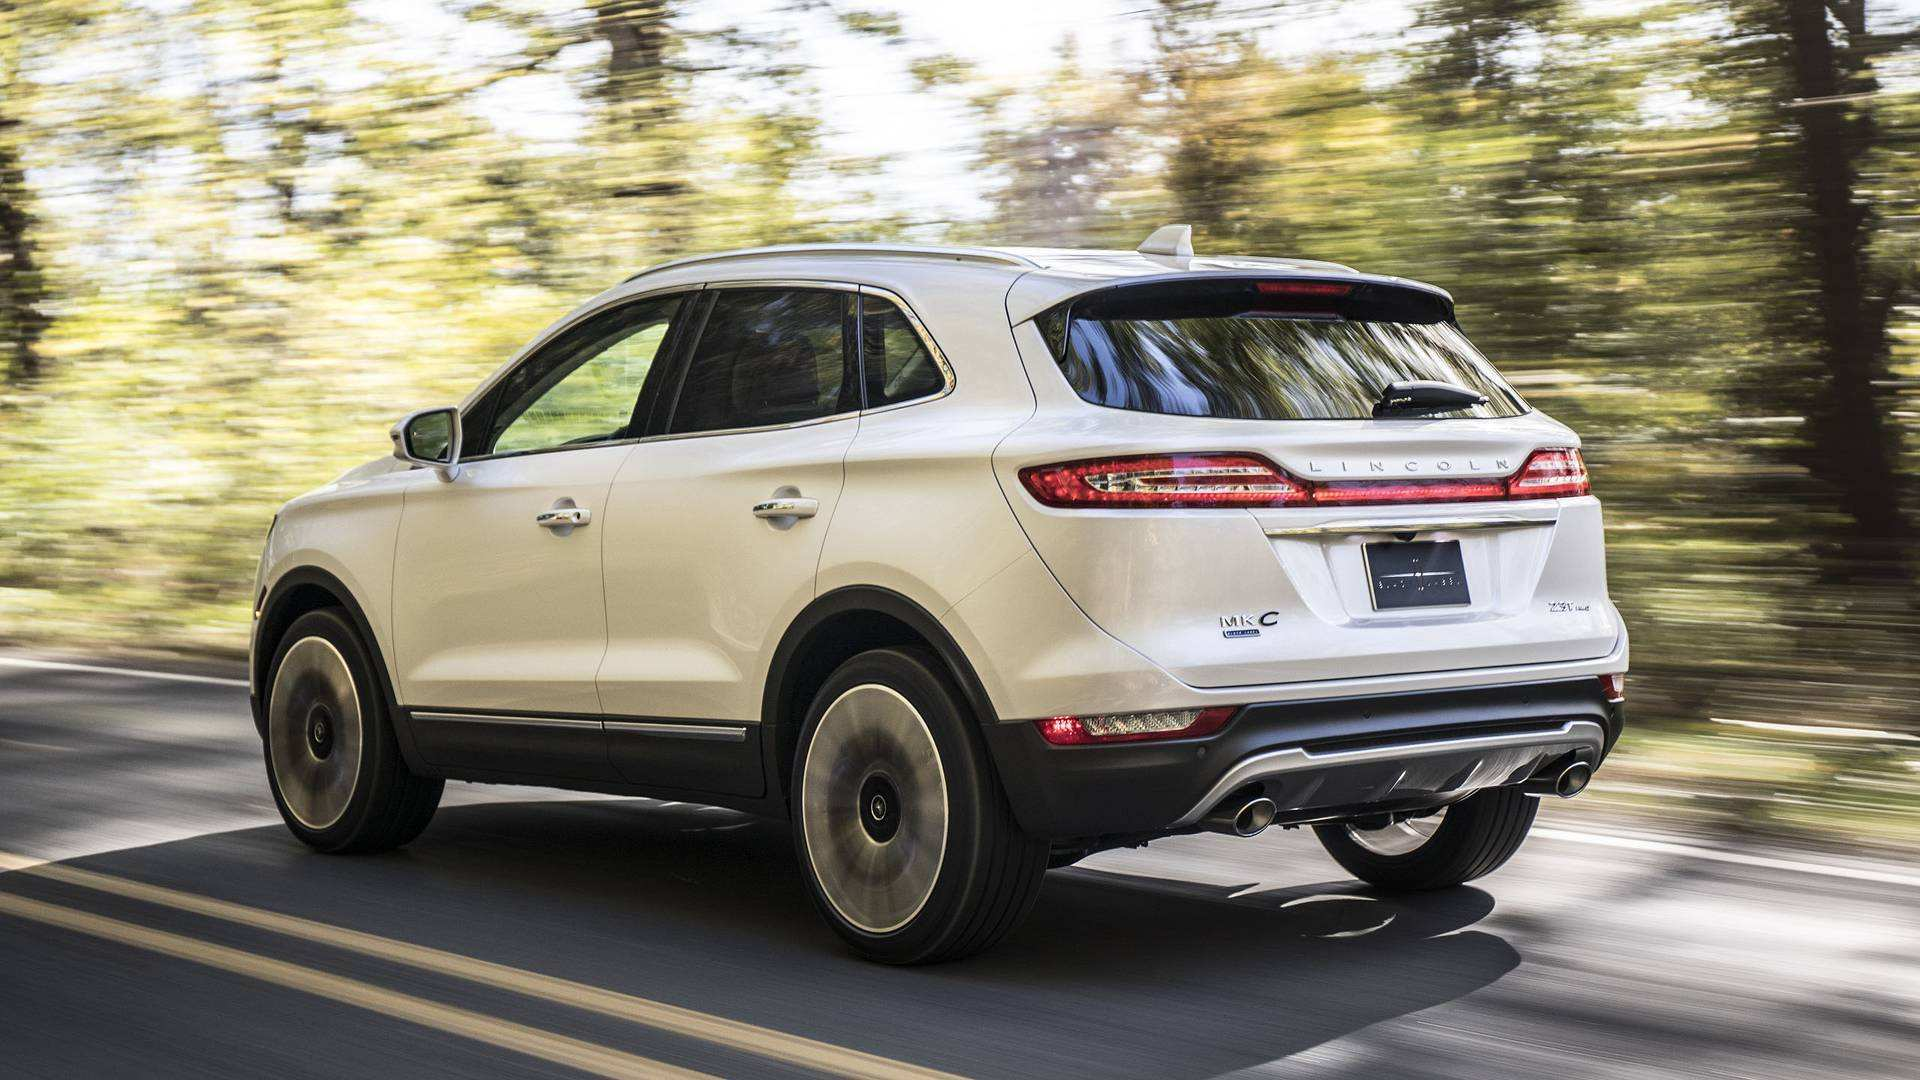 49 The Best 2019 Lincoln MKC Redesign